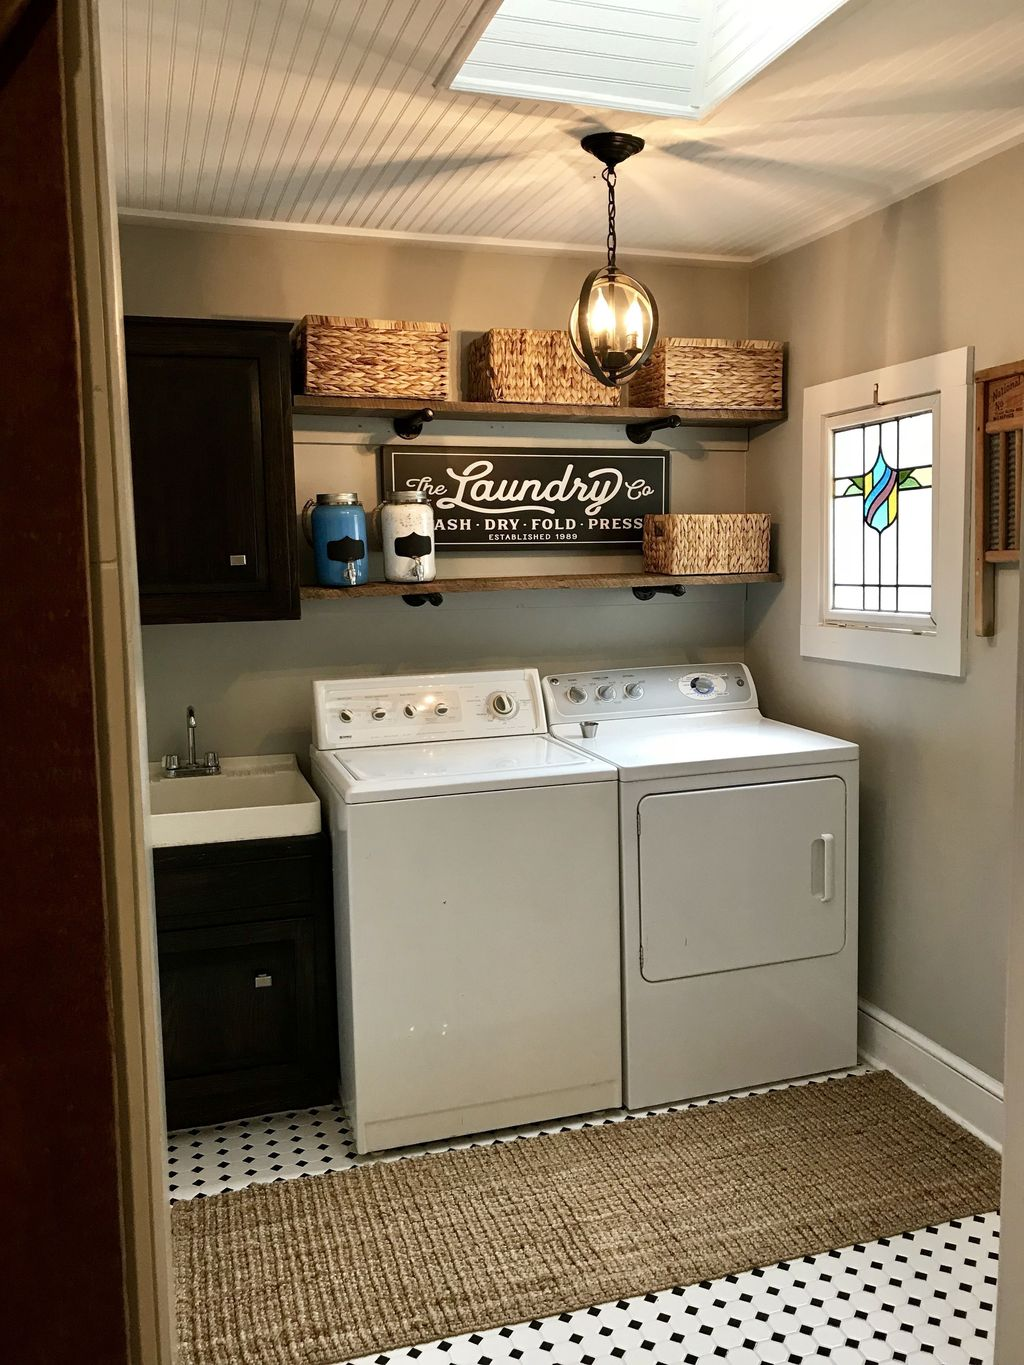 Inspiring Small Laundry Room Design And Decor Ideas 27